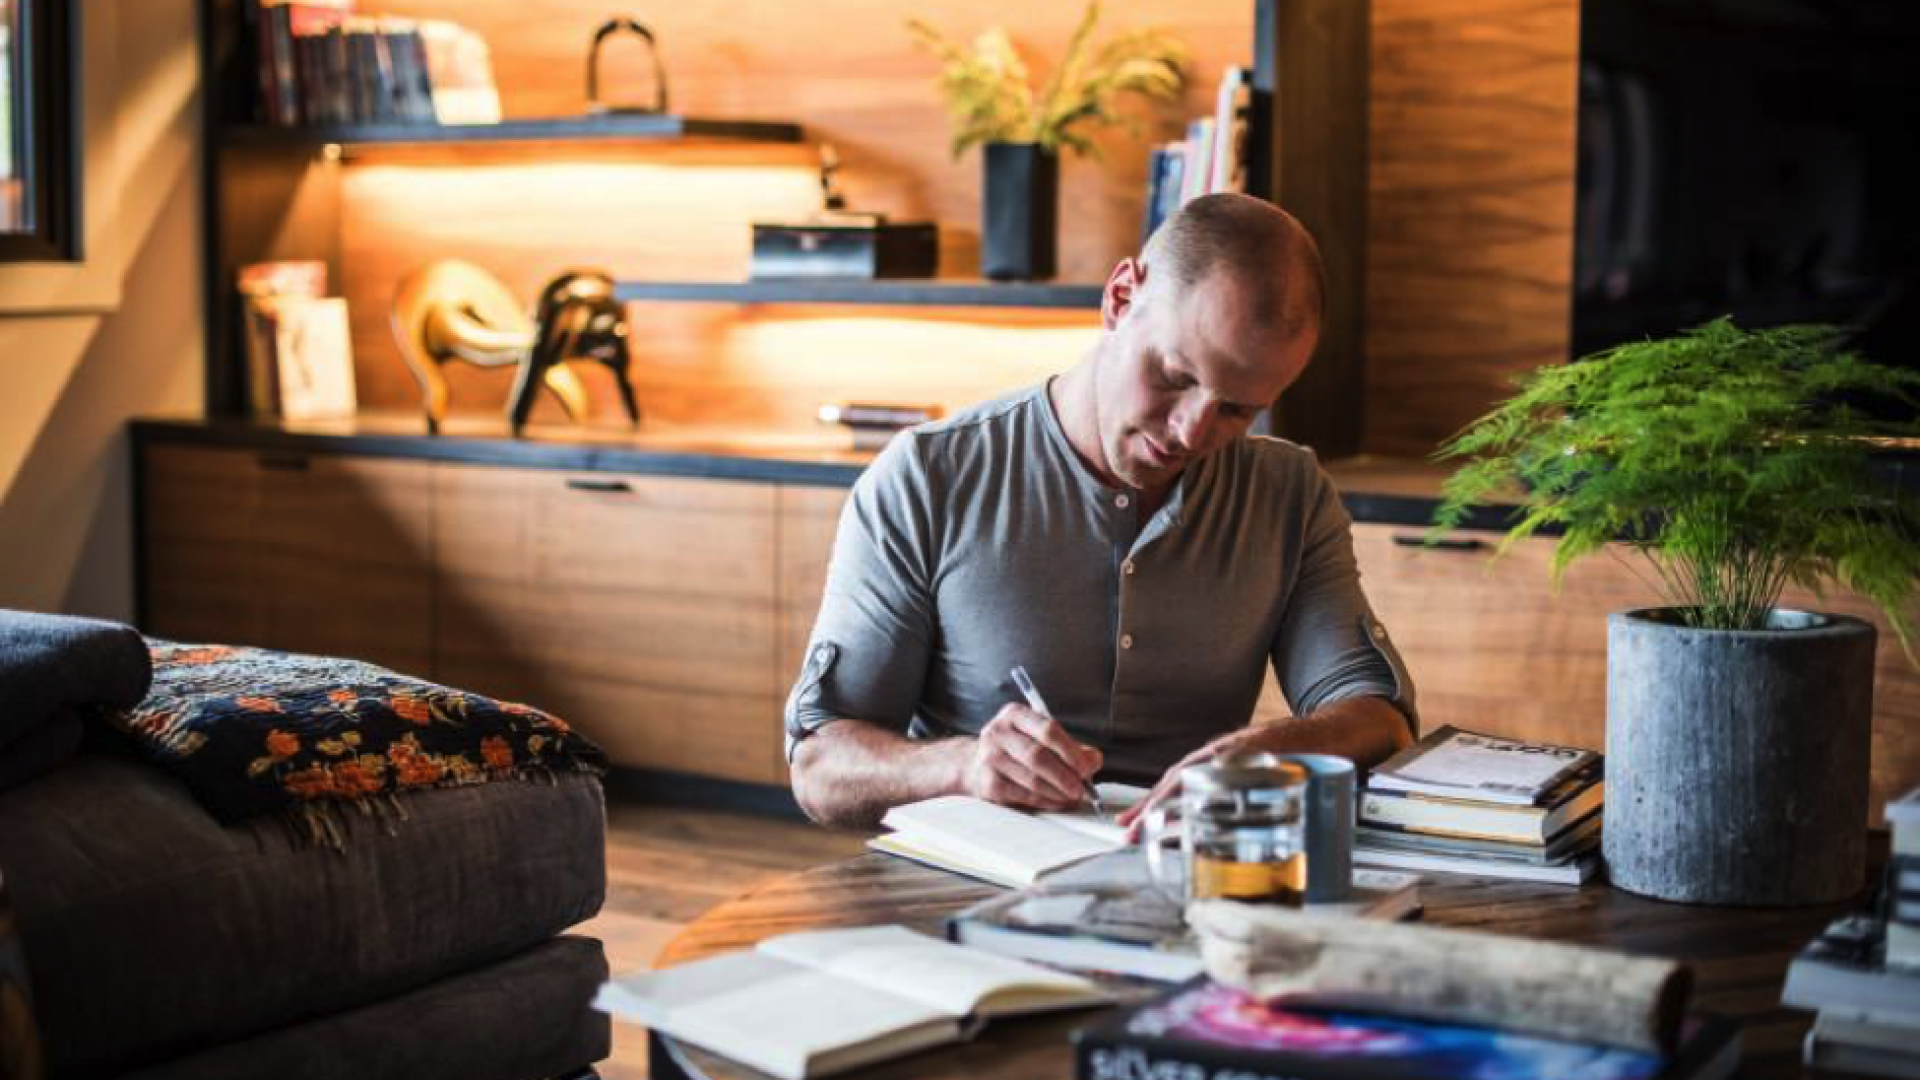 Tim Ferriss, author of <em>The 4-Hour Workweek</em>, shares his philosophies on productivity and managing your life.